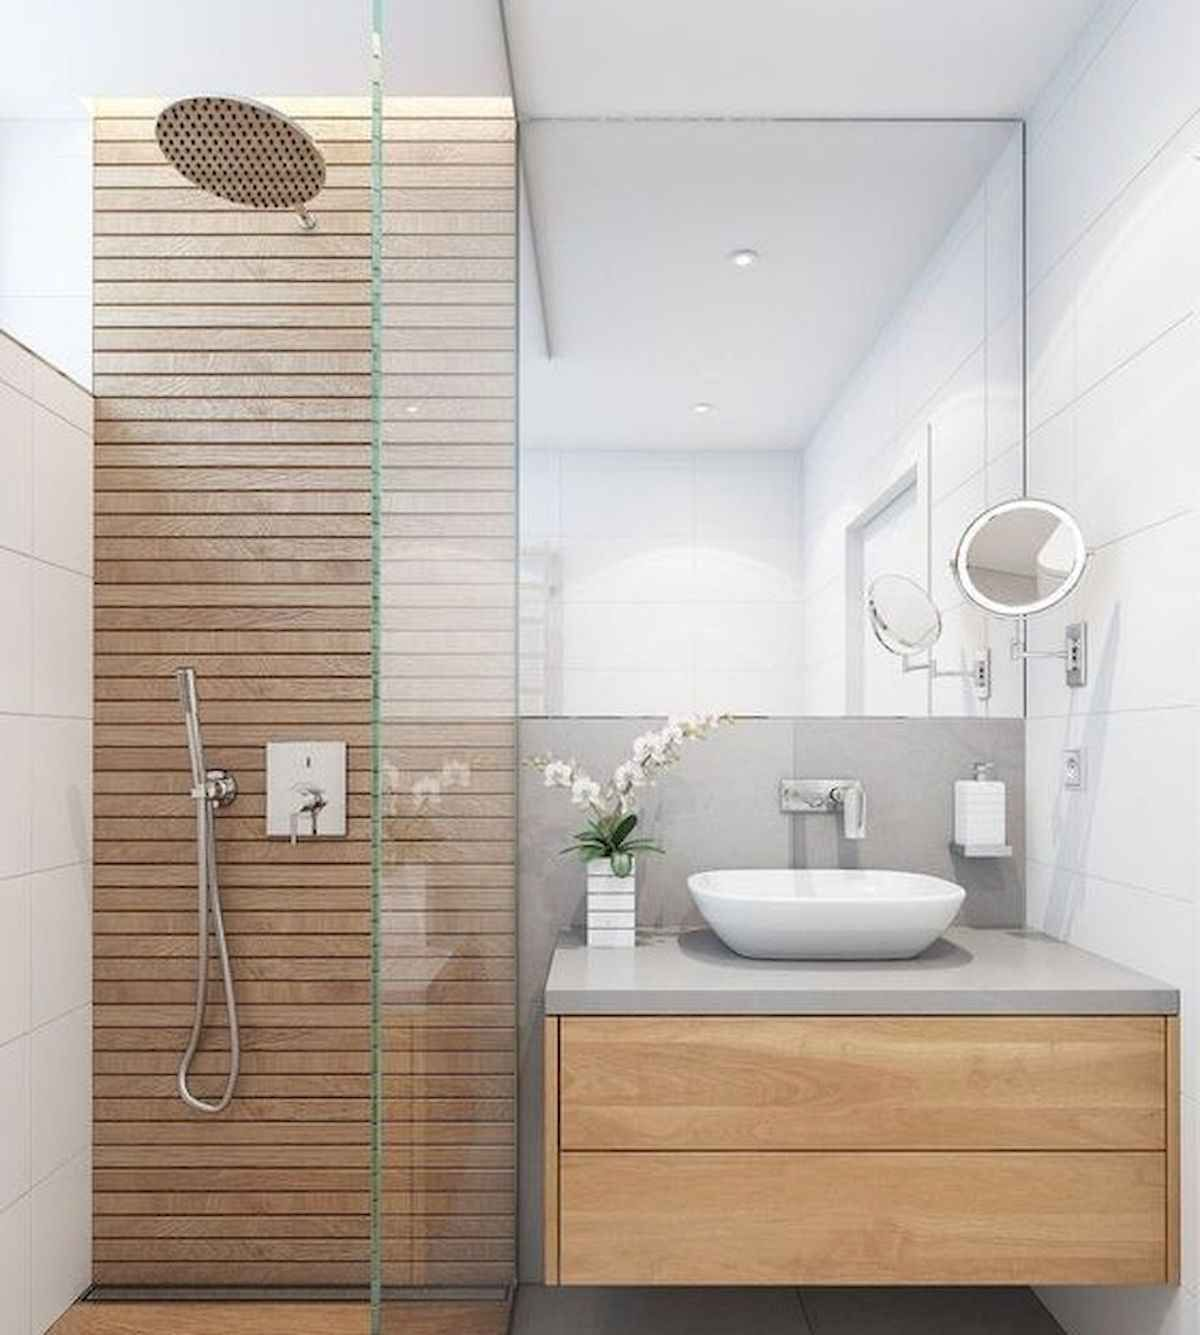 50 stunning small bathroom makeover ideas 36 with images on stunning small bathroom design ideas id=73802